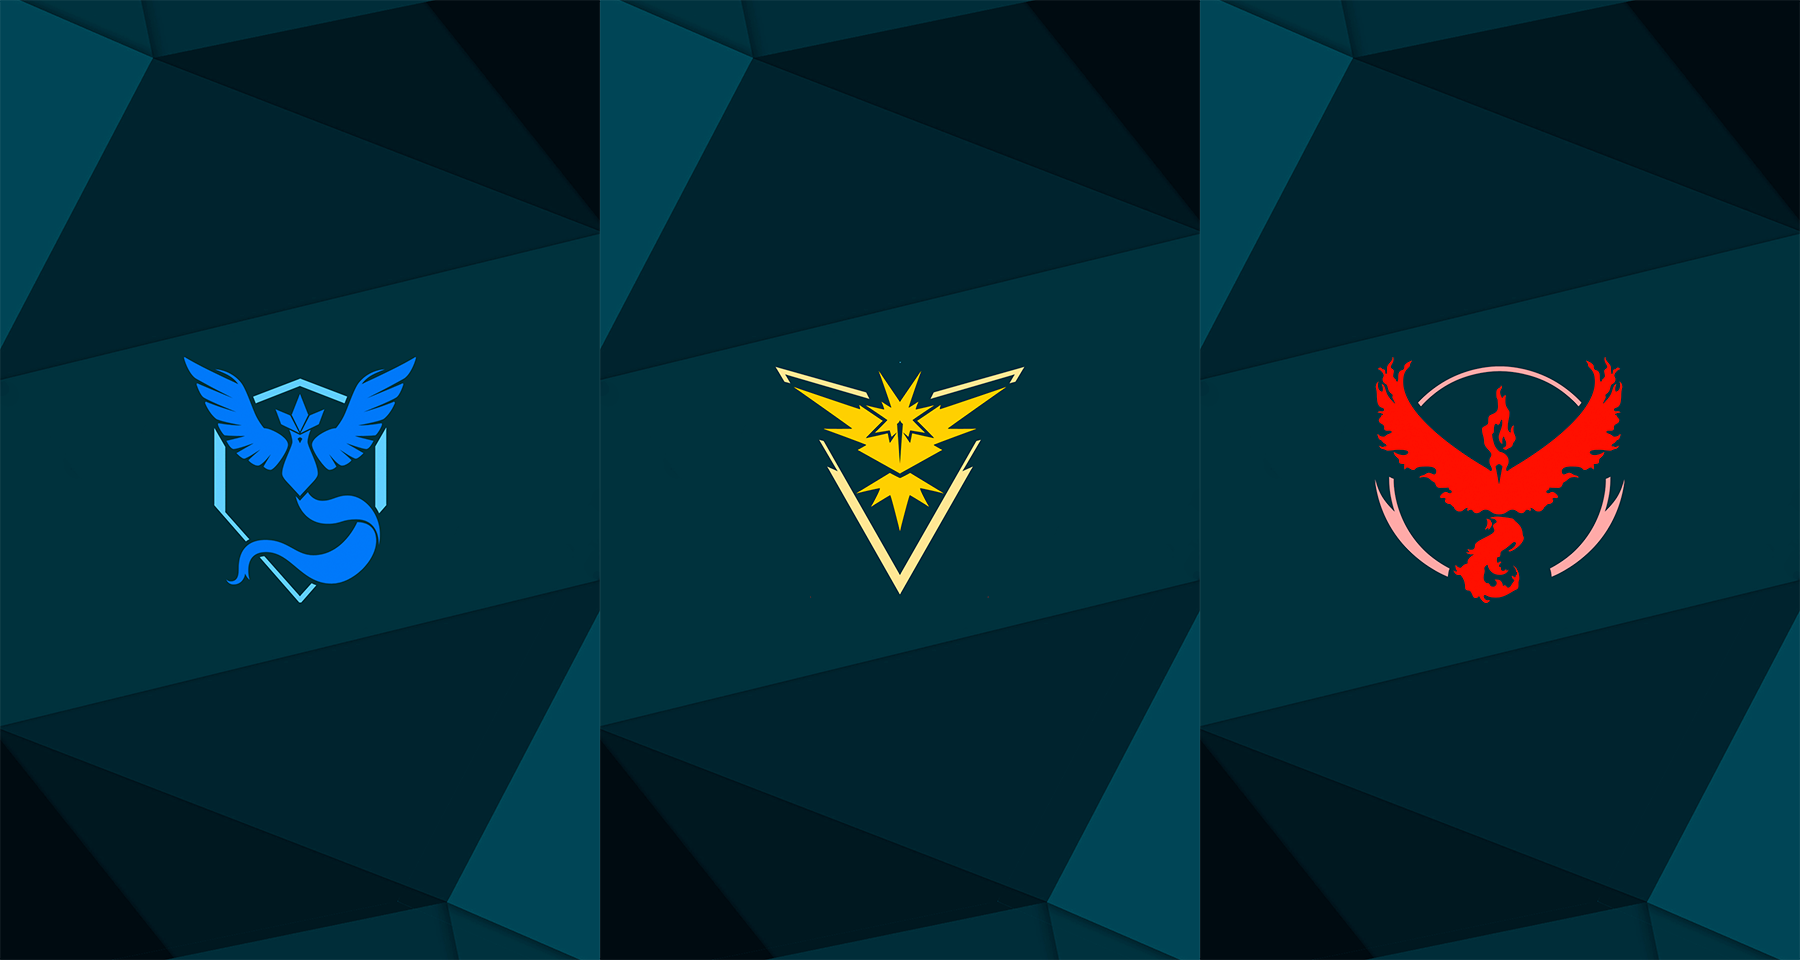 Pokemon Go Teams Wallpaper Pack By Malexer On Deviantart